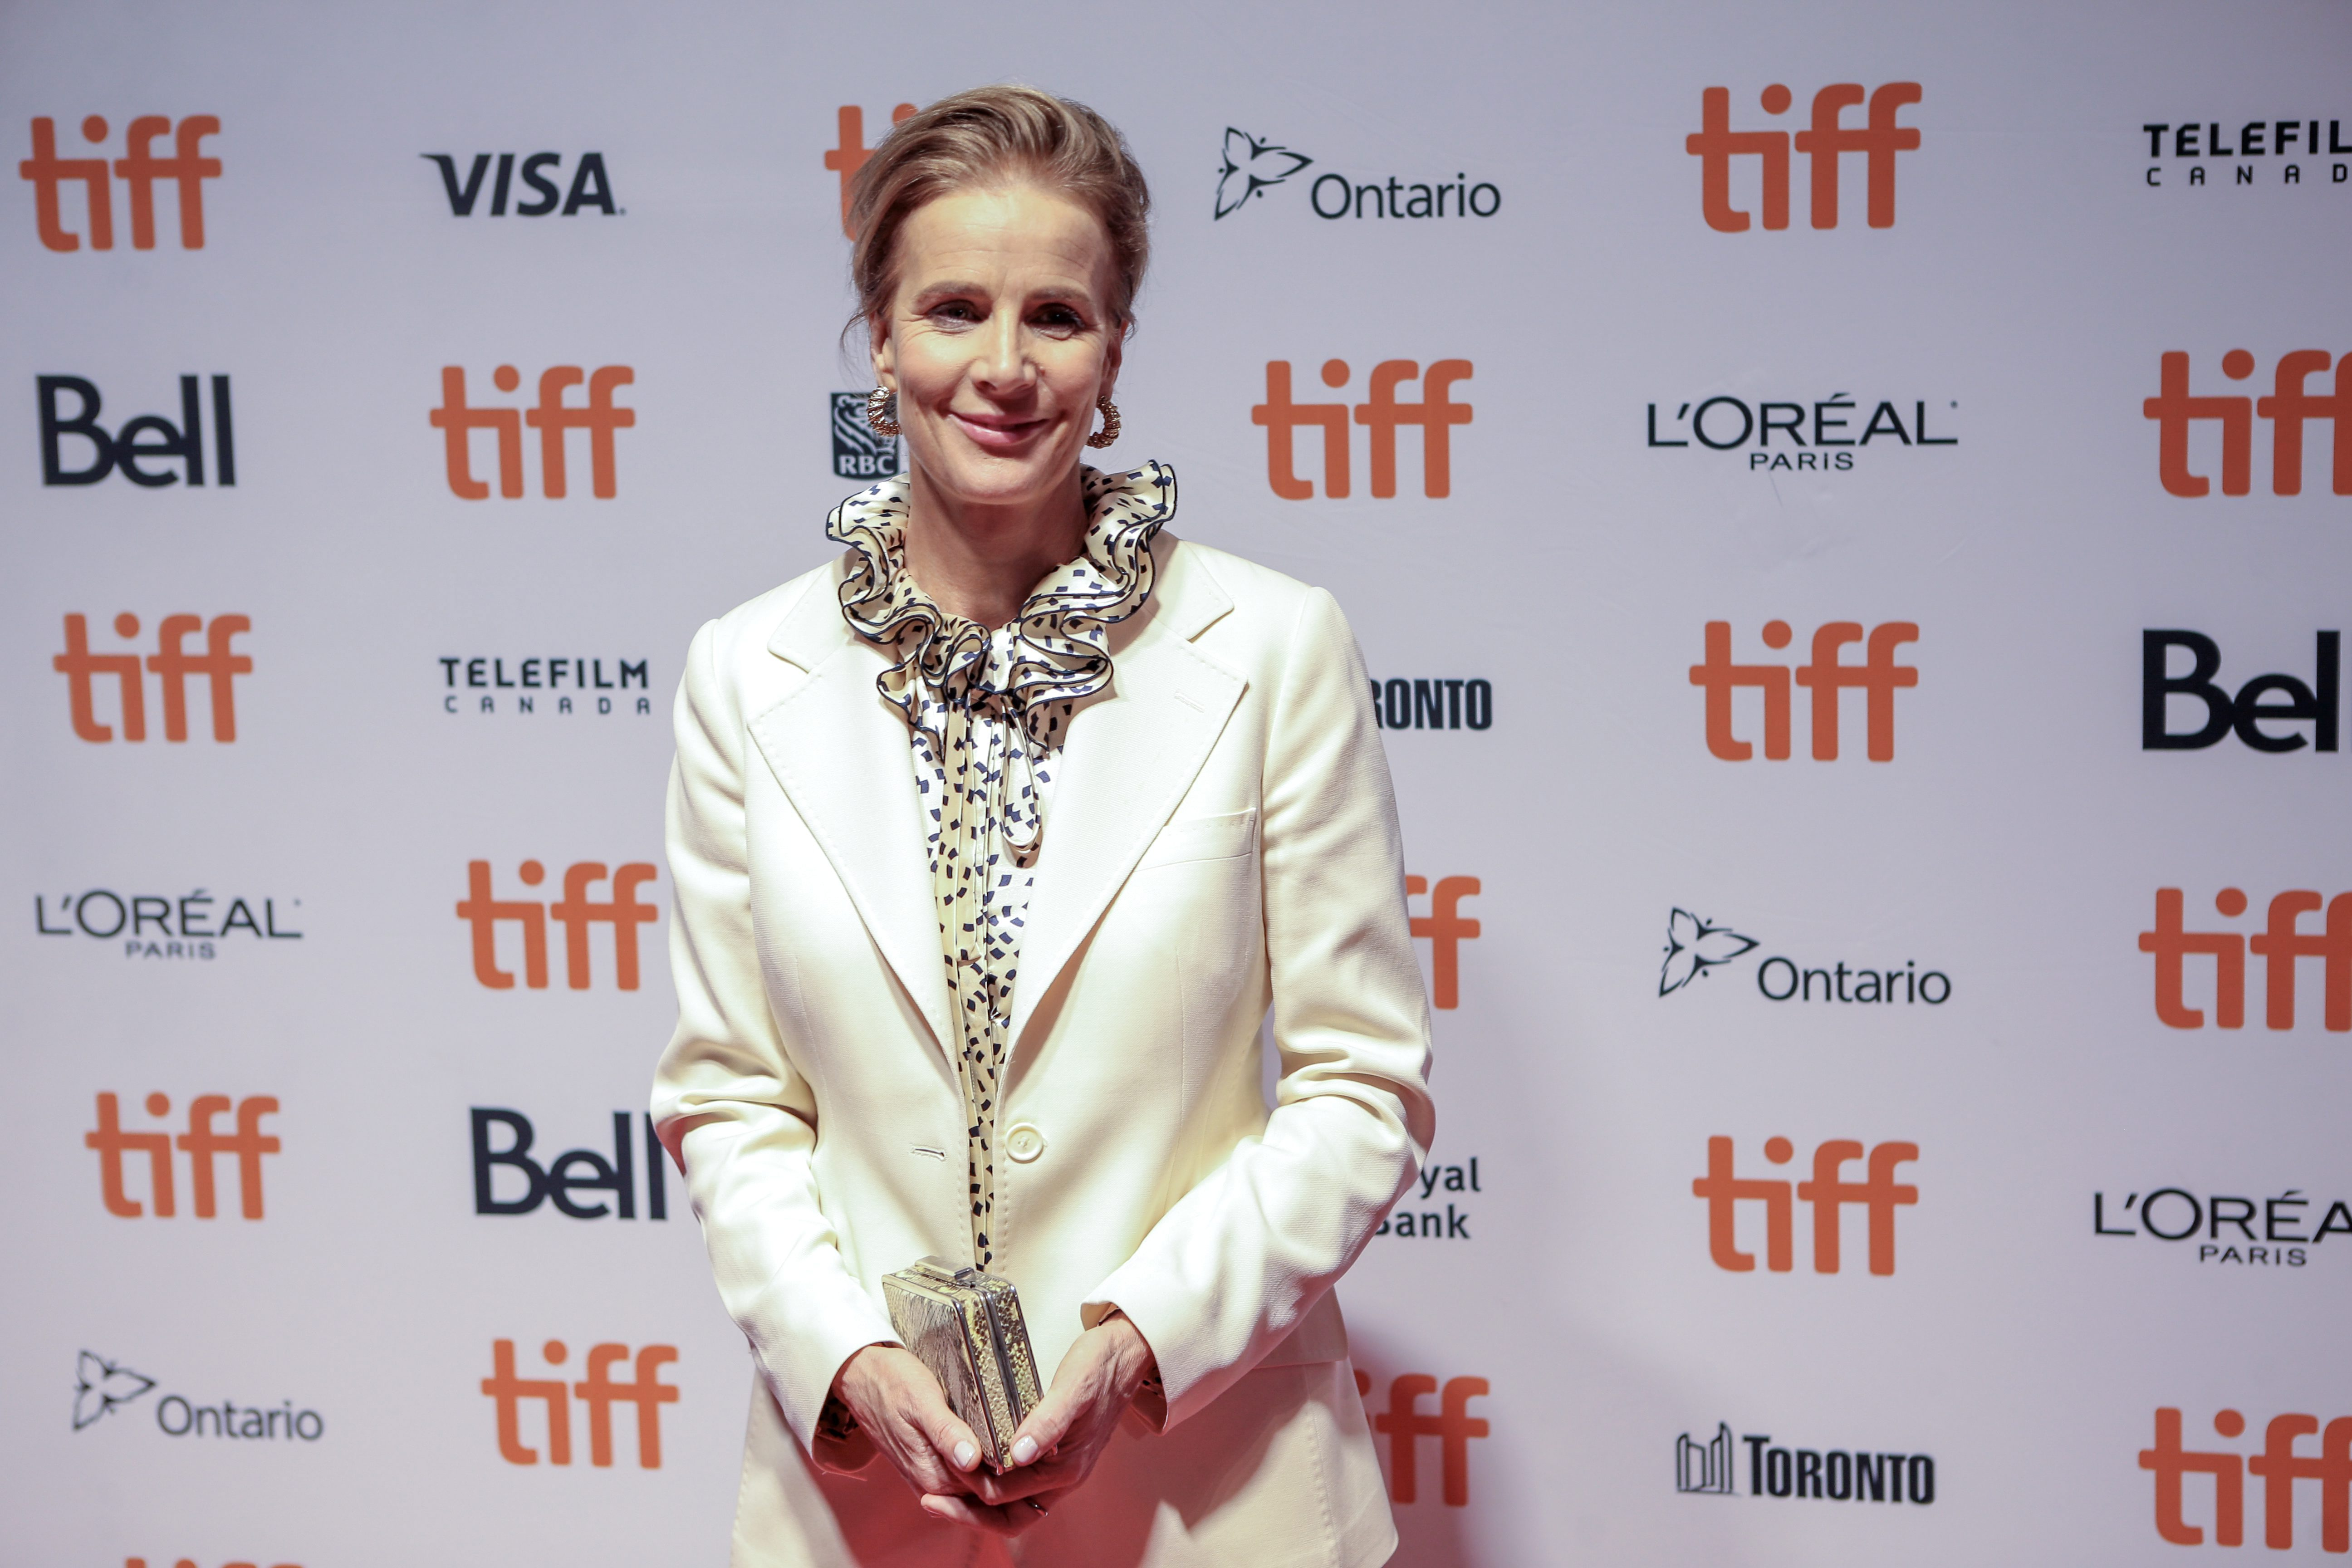 Rachel Griffiths Apologizes After Backlash To 'Shallow' Social Media Post About Her Manicure As 'America Is Burning